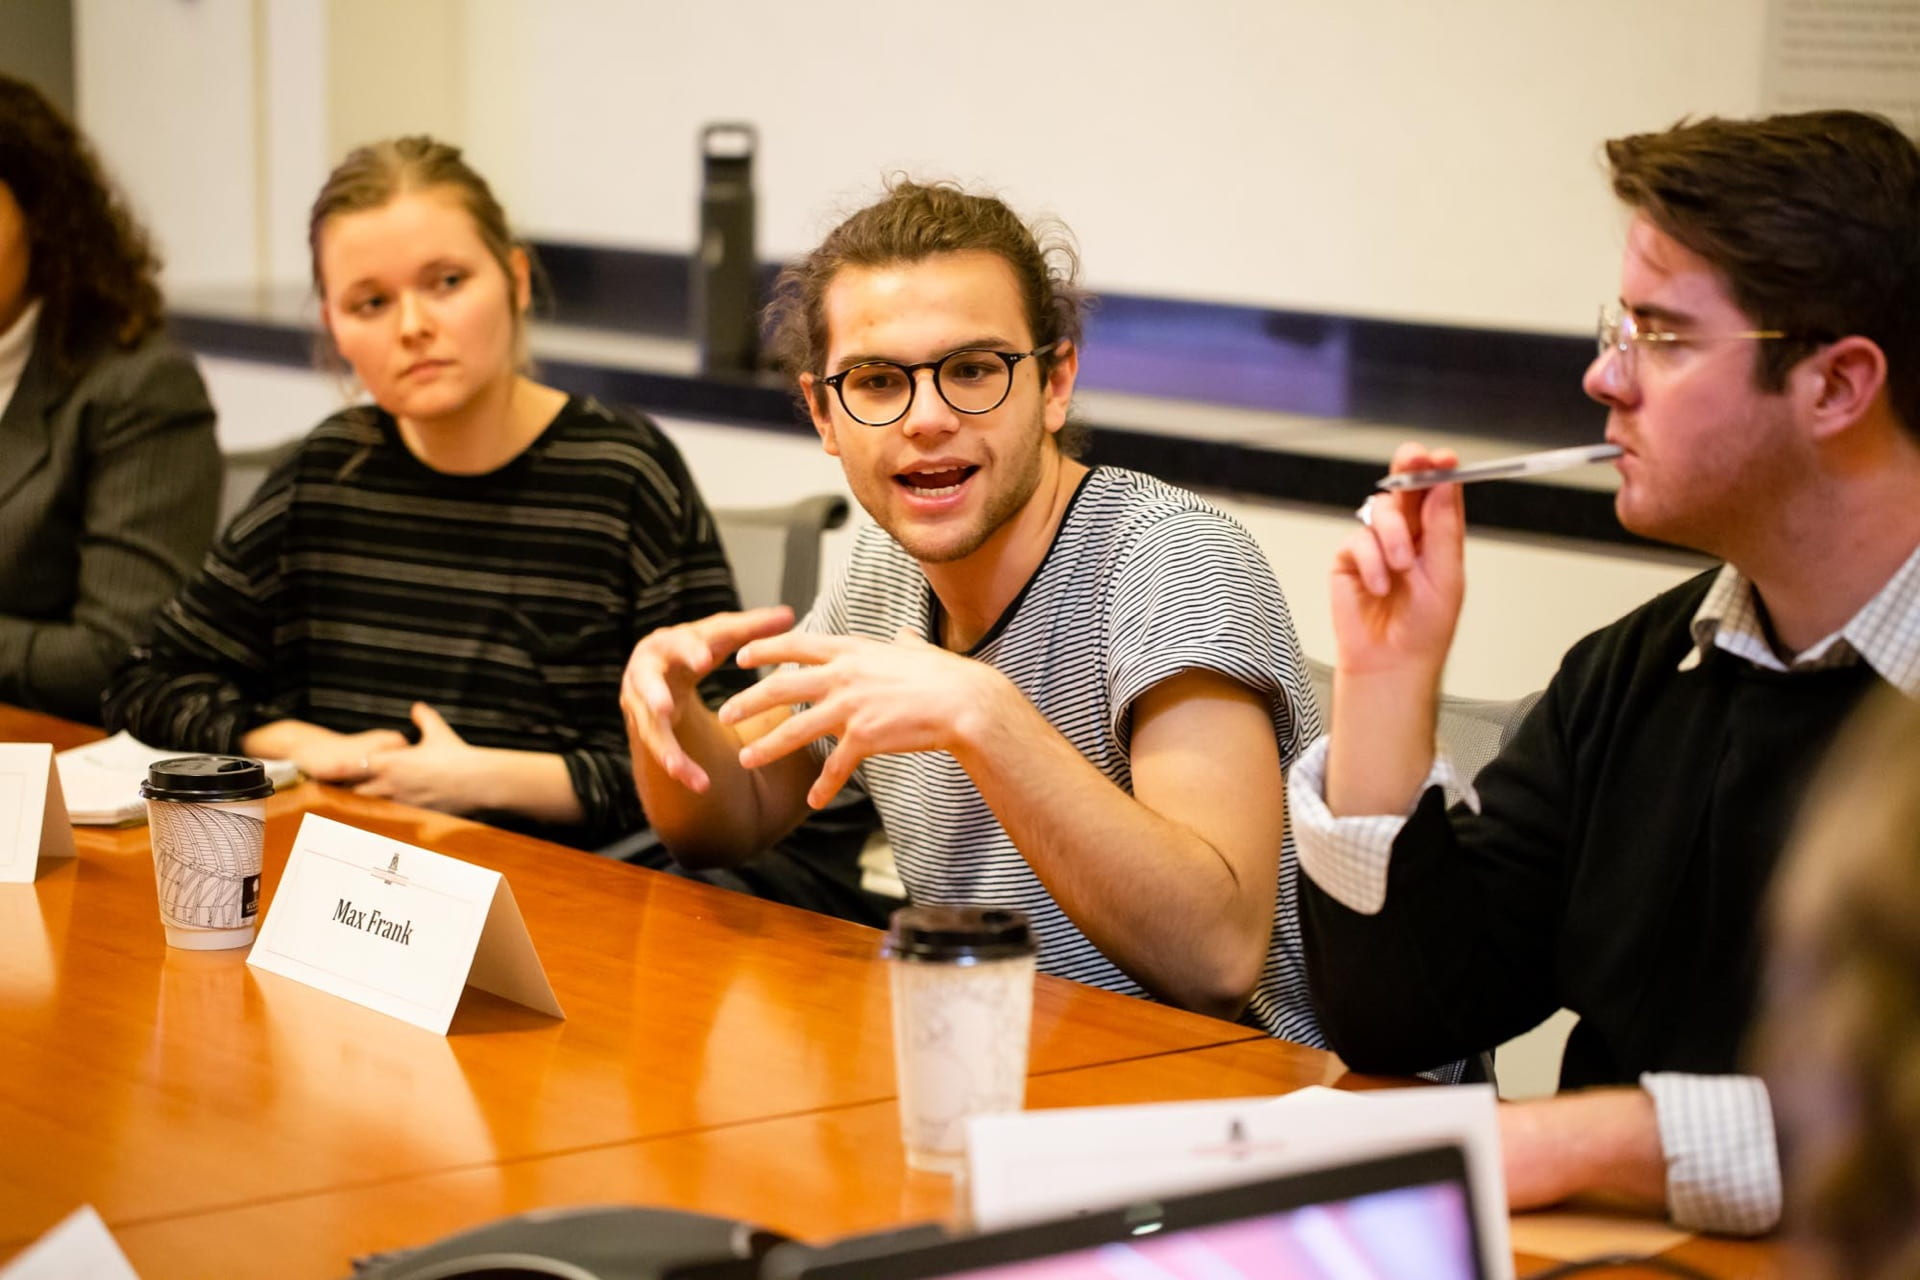 male student speaks at table